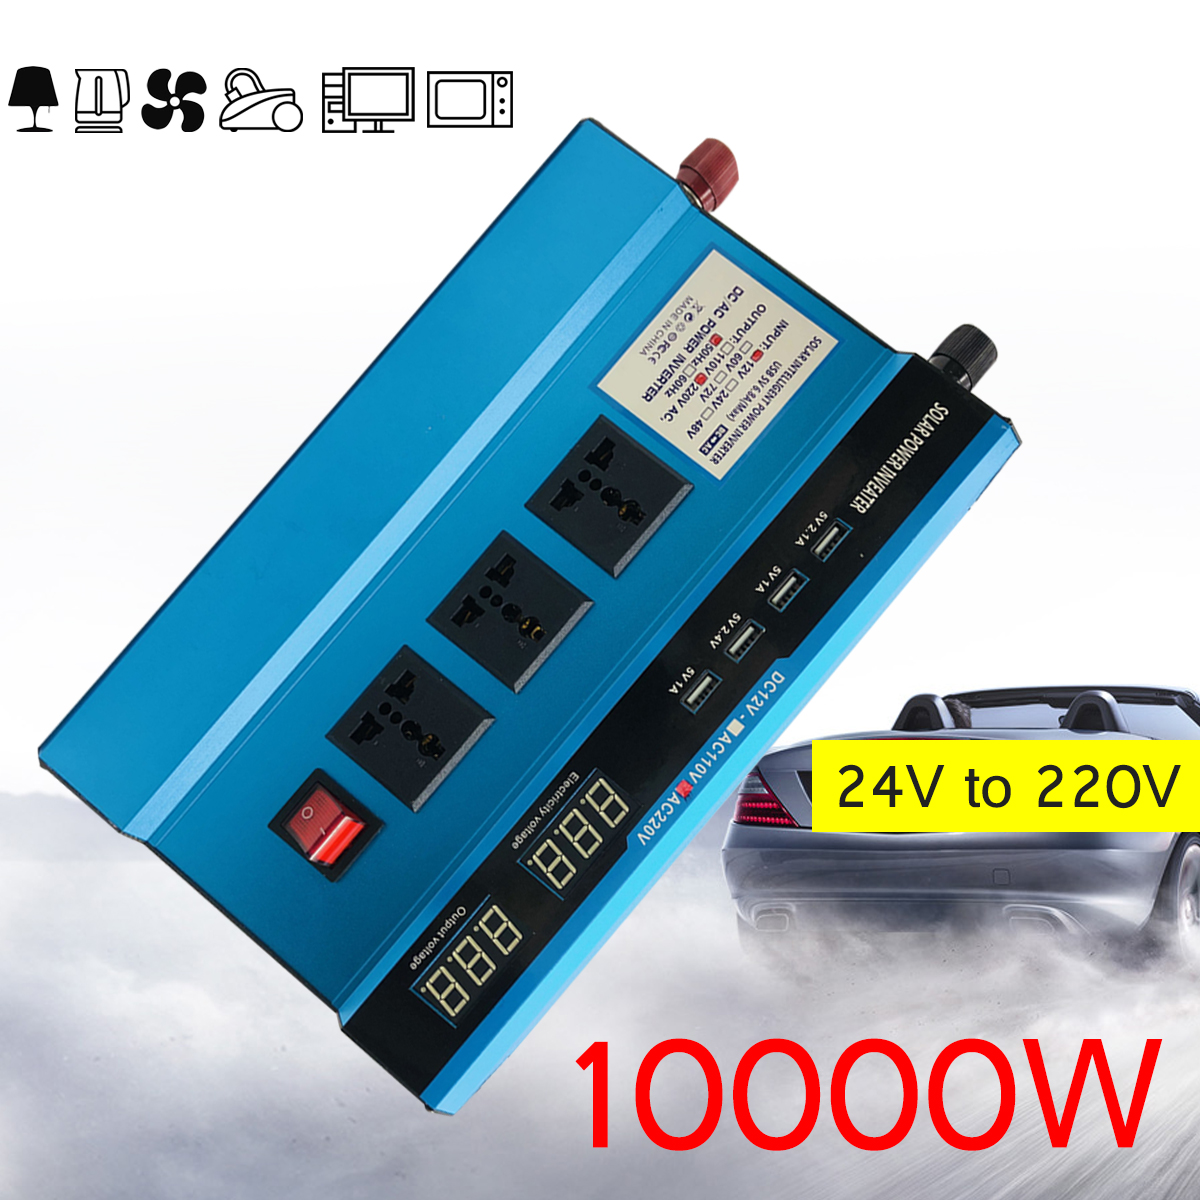 Voltage Transformer PEAK 10000W Car Solar Power Inverter